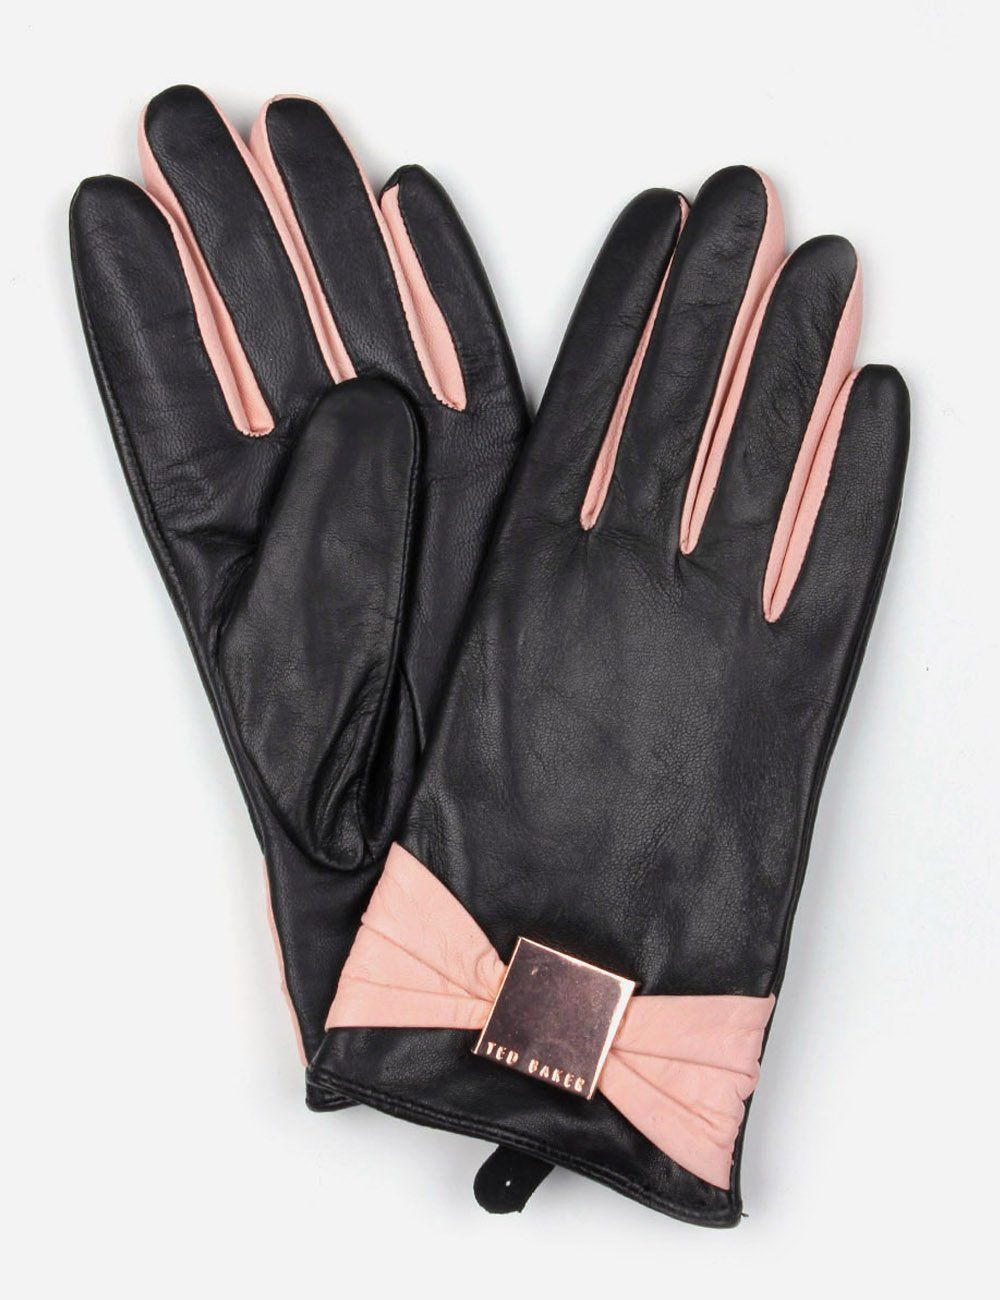 Ladies leather cycling gloves - Leather Gloves For Women View All Ted Baker View All Accessories View All